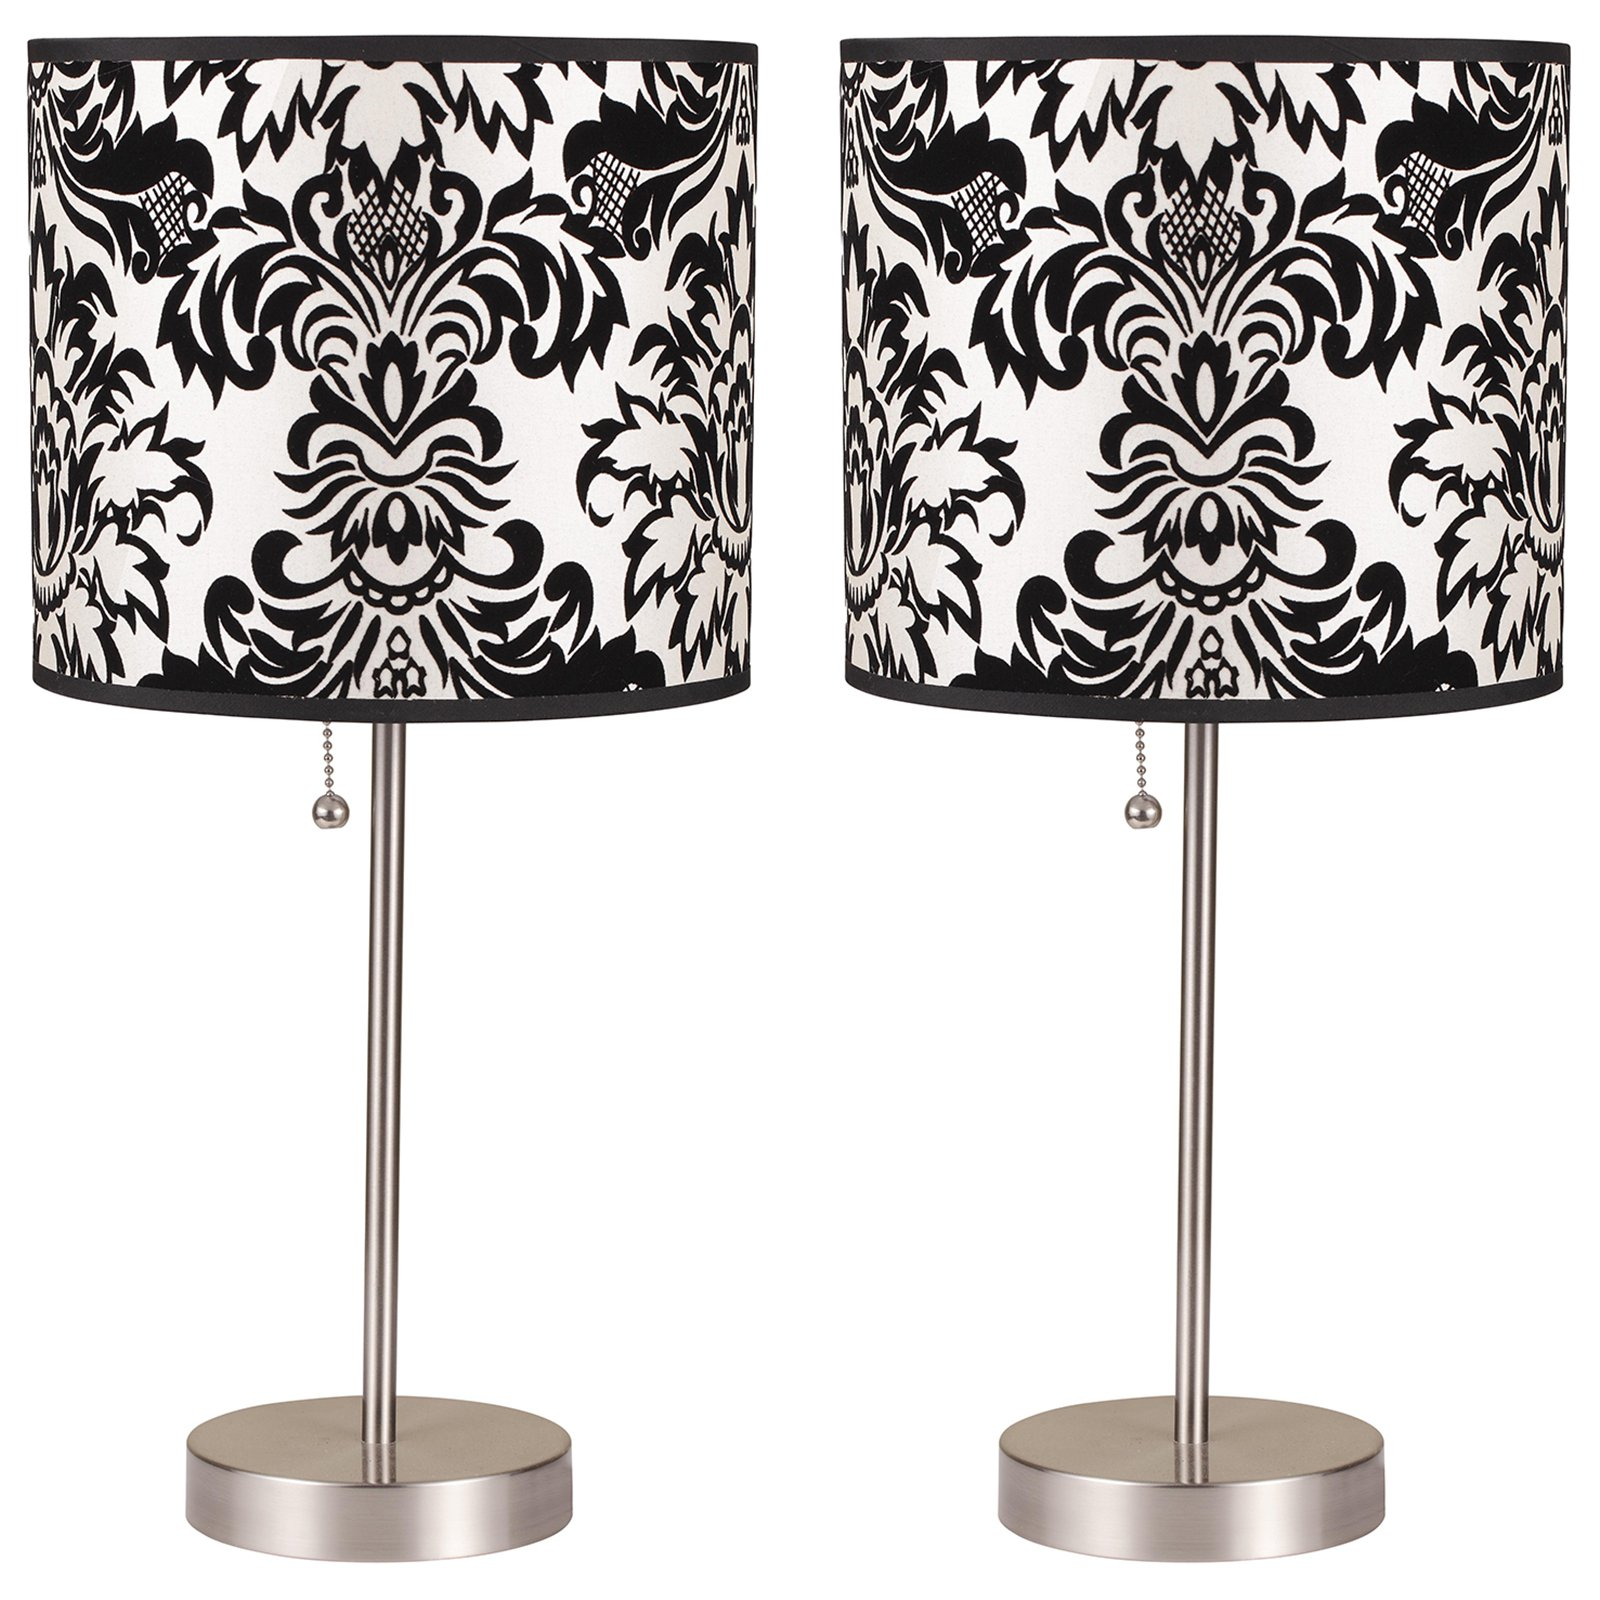 Milton Greens Ruslana Table Lamp - Set of 2